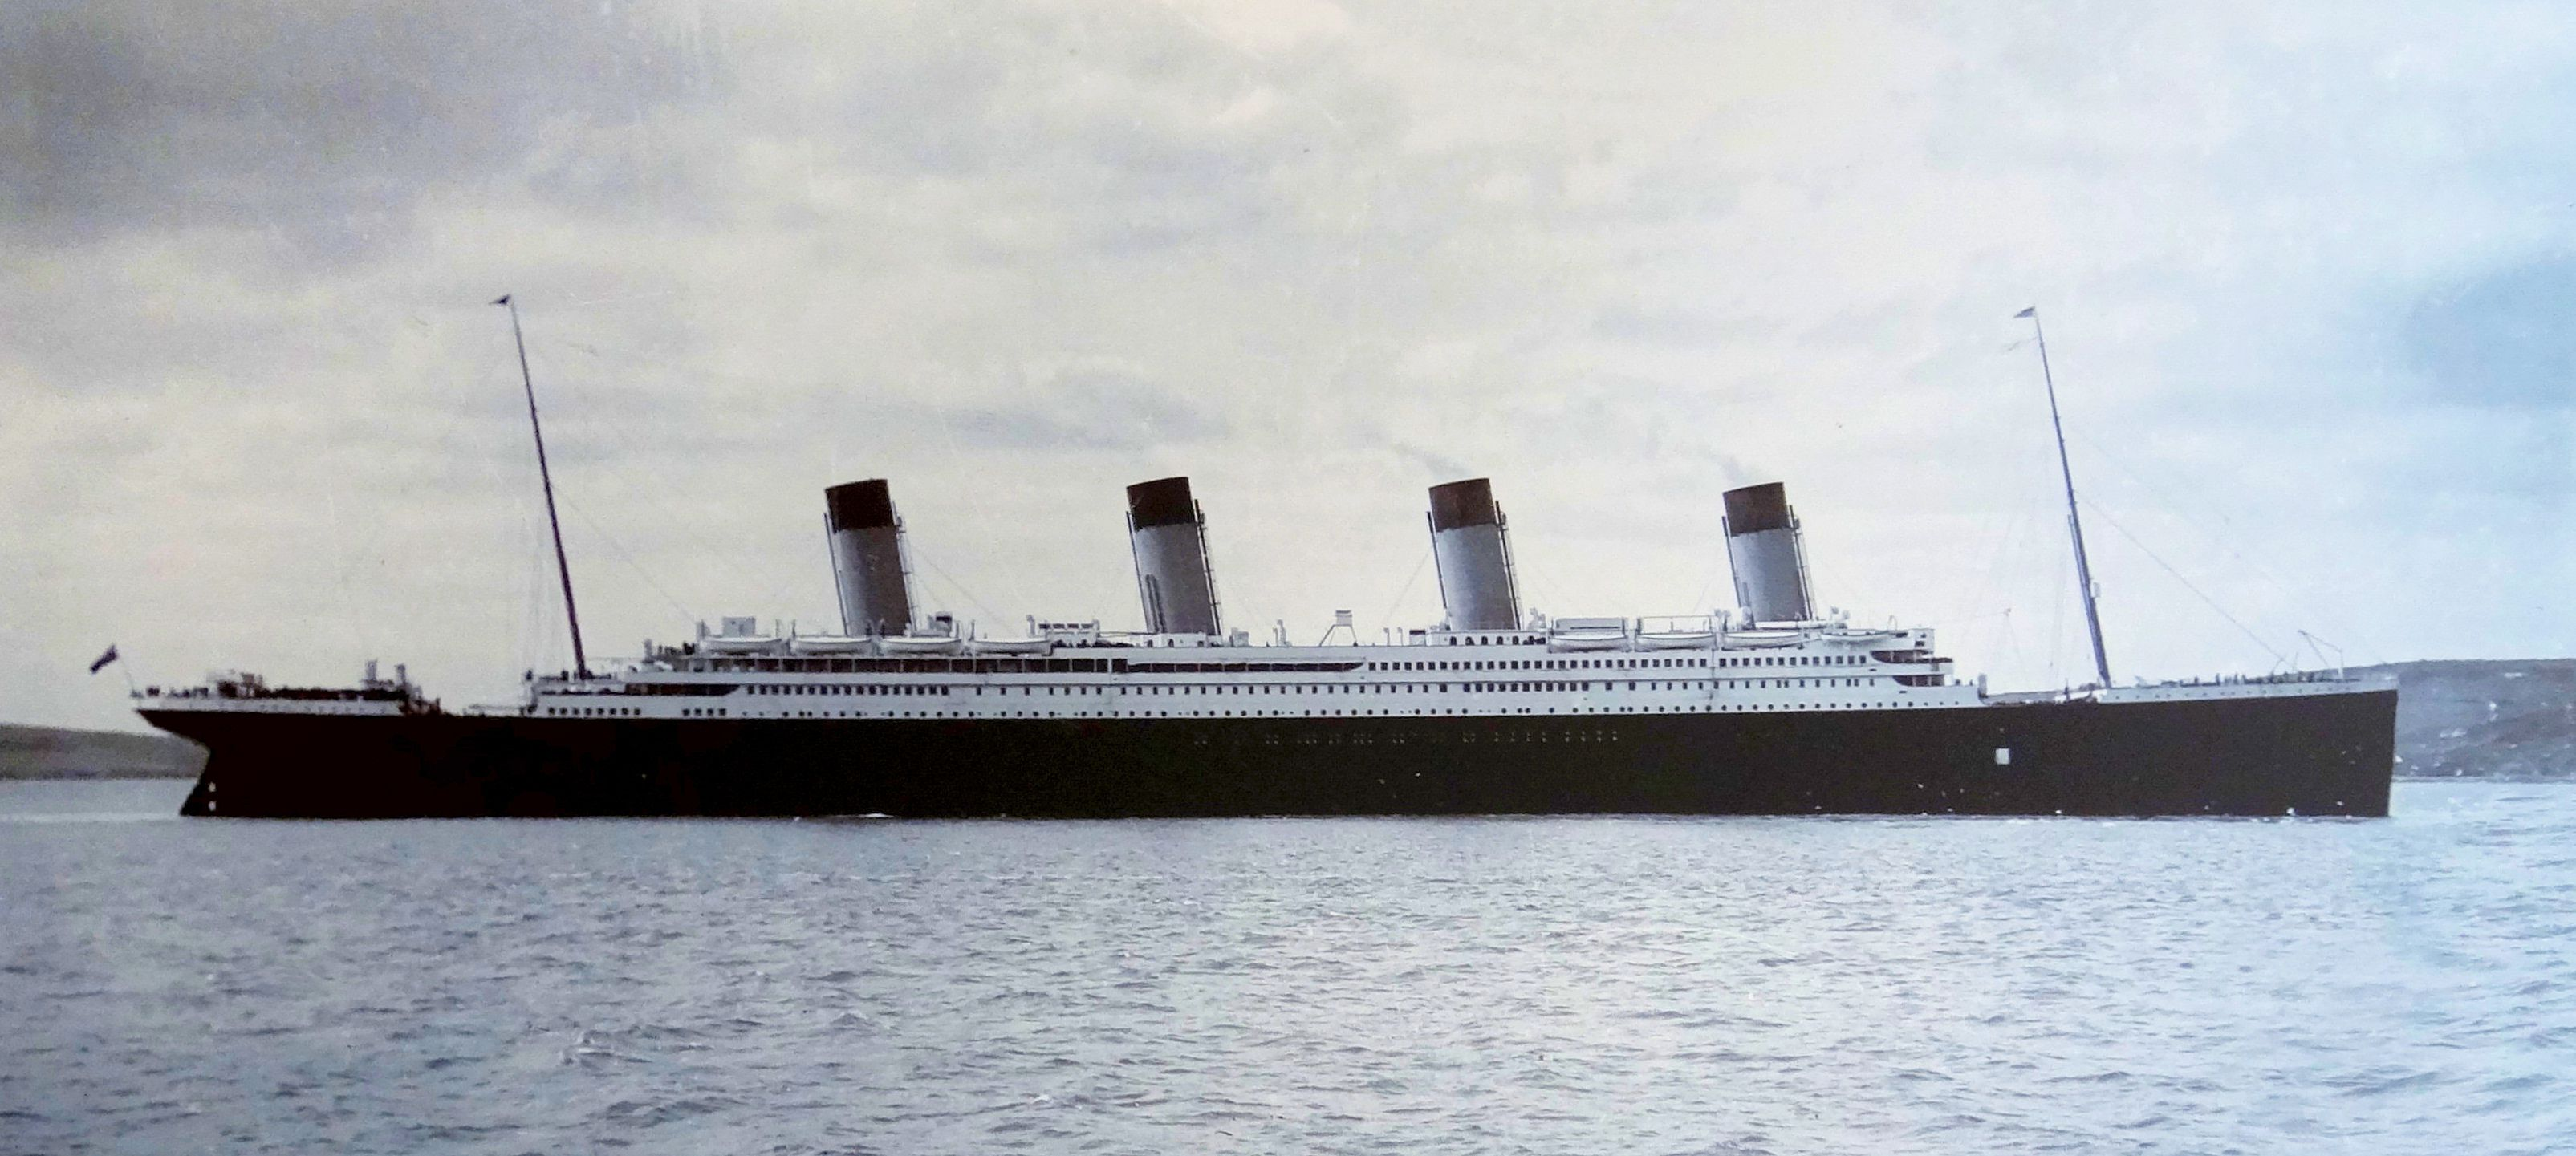 3. The Sinking of the Titanic